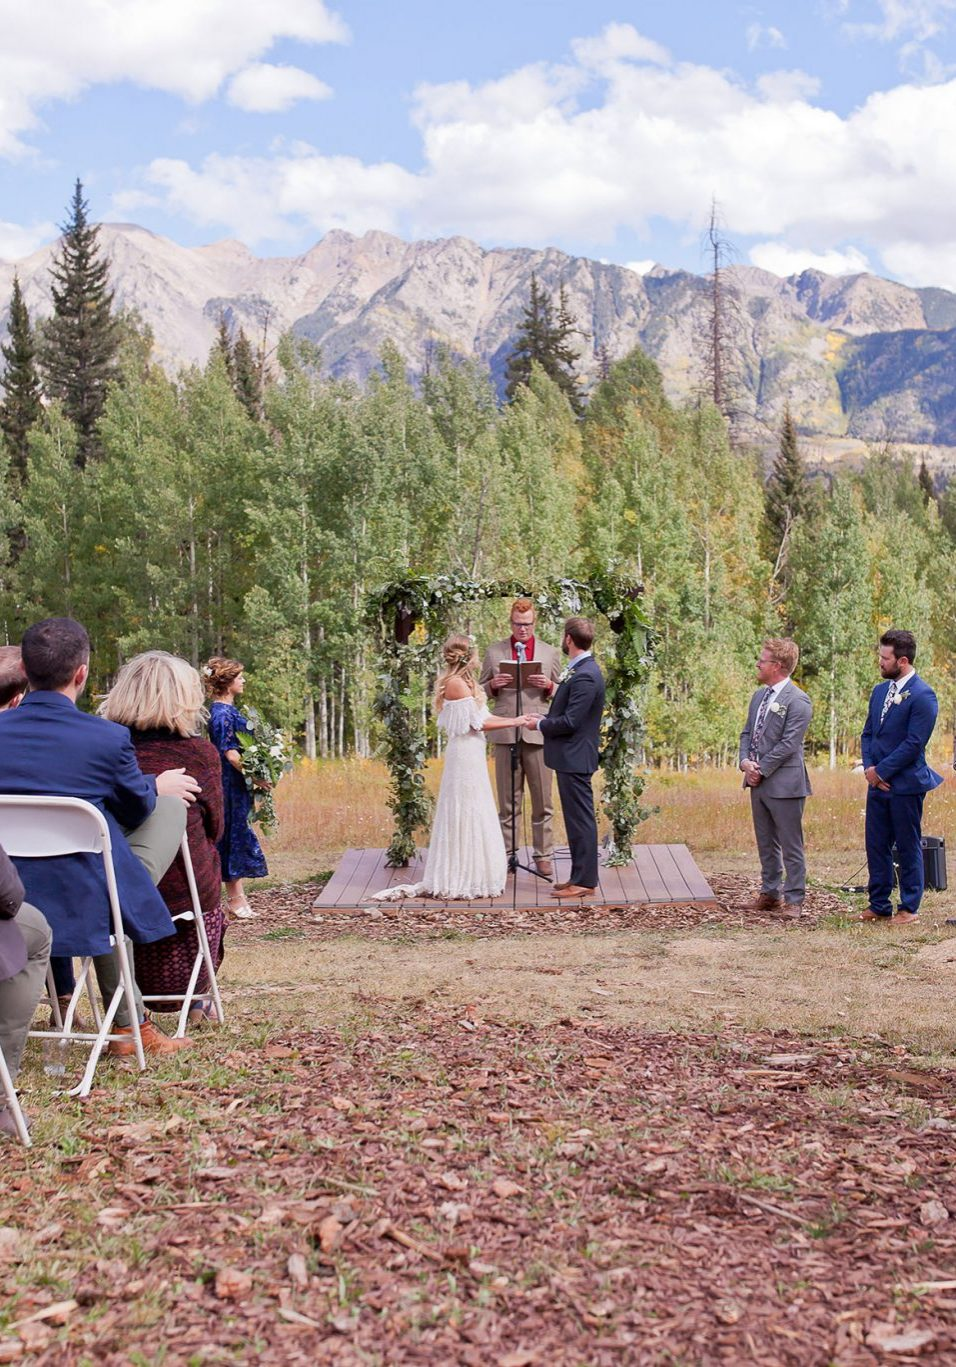 Ceremony at Cascade Village, Durango Colorado